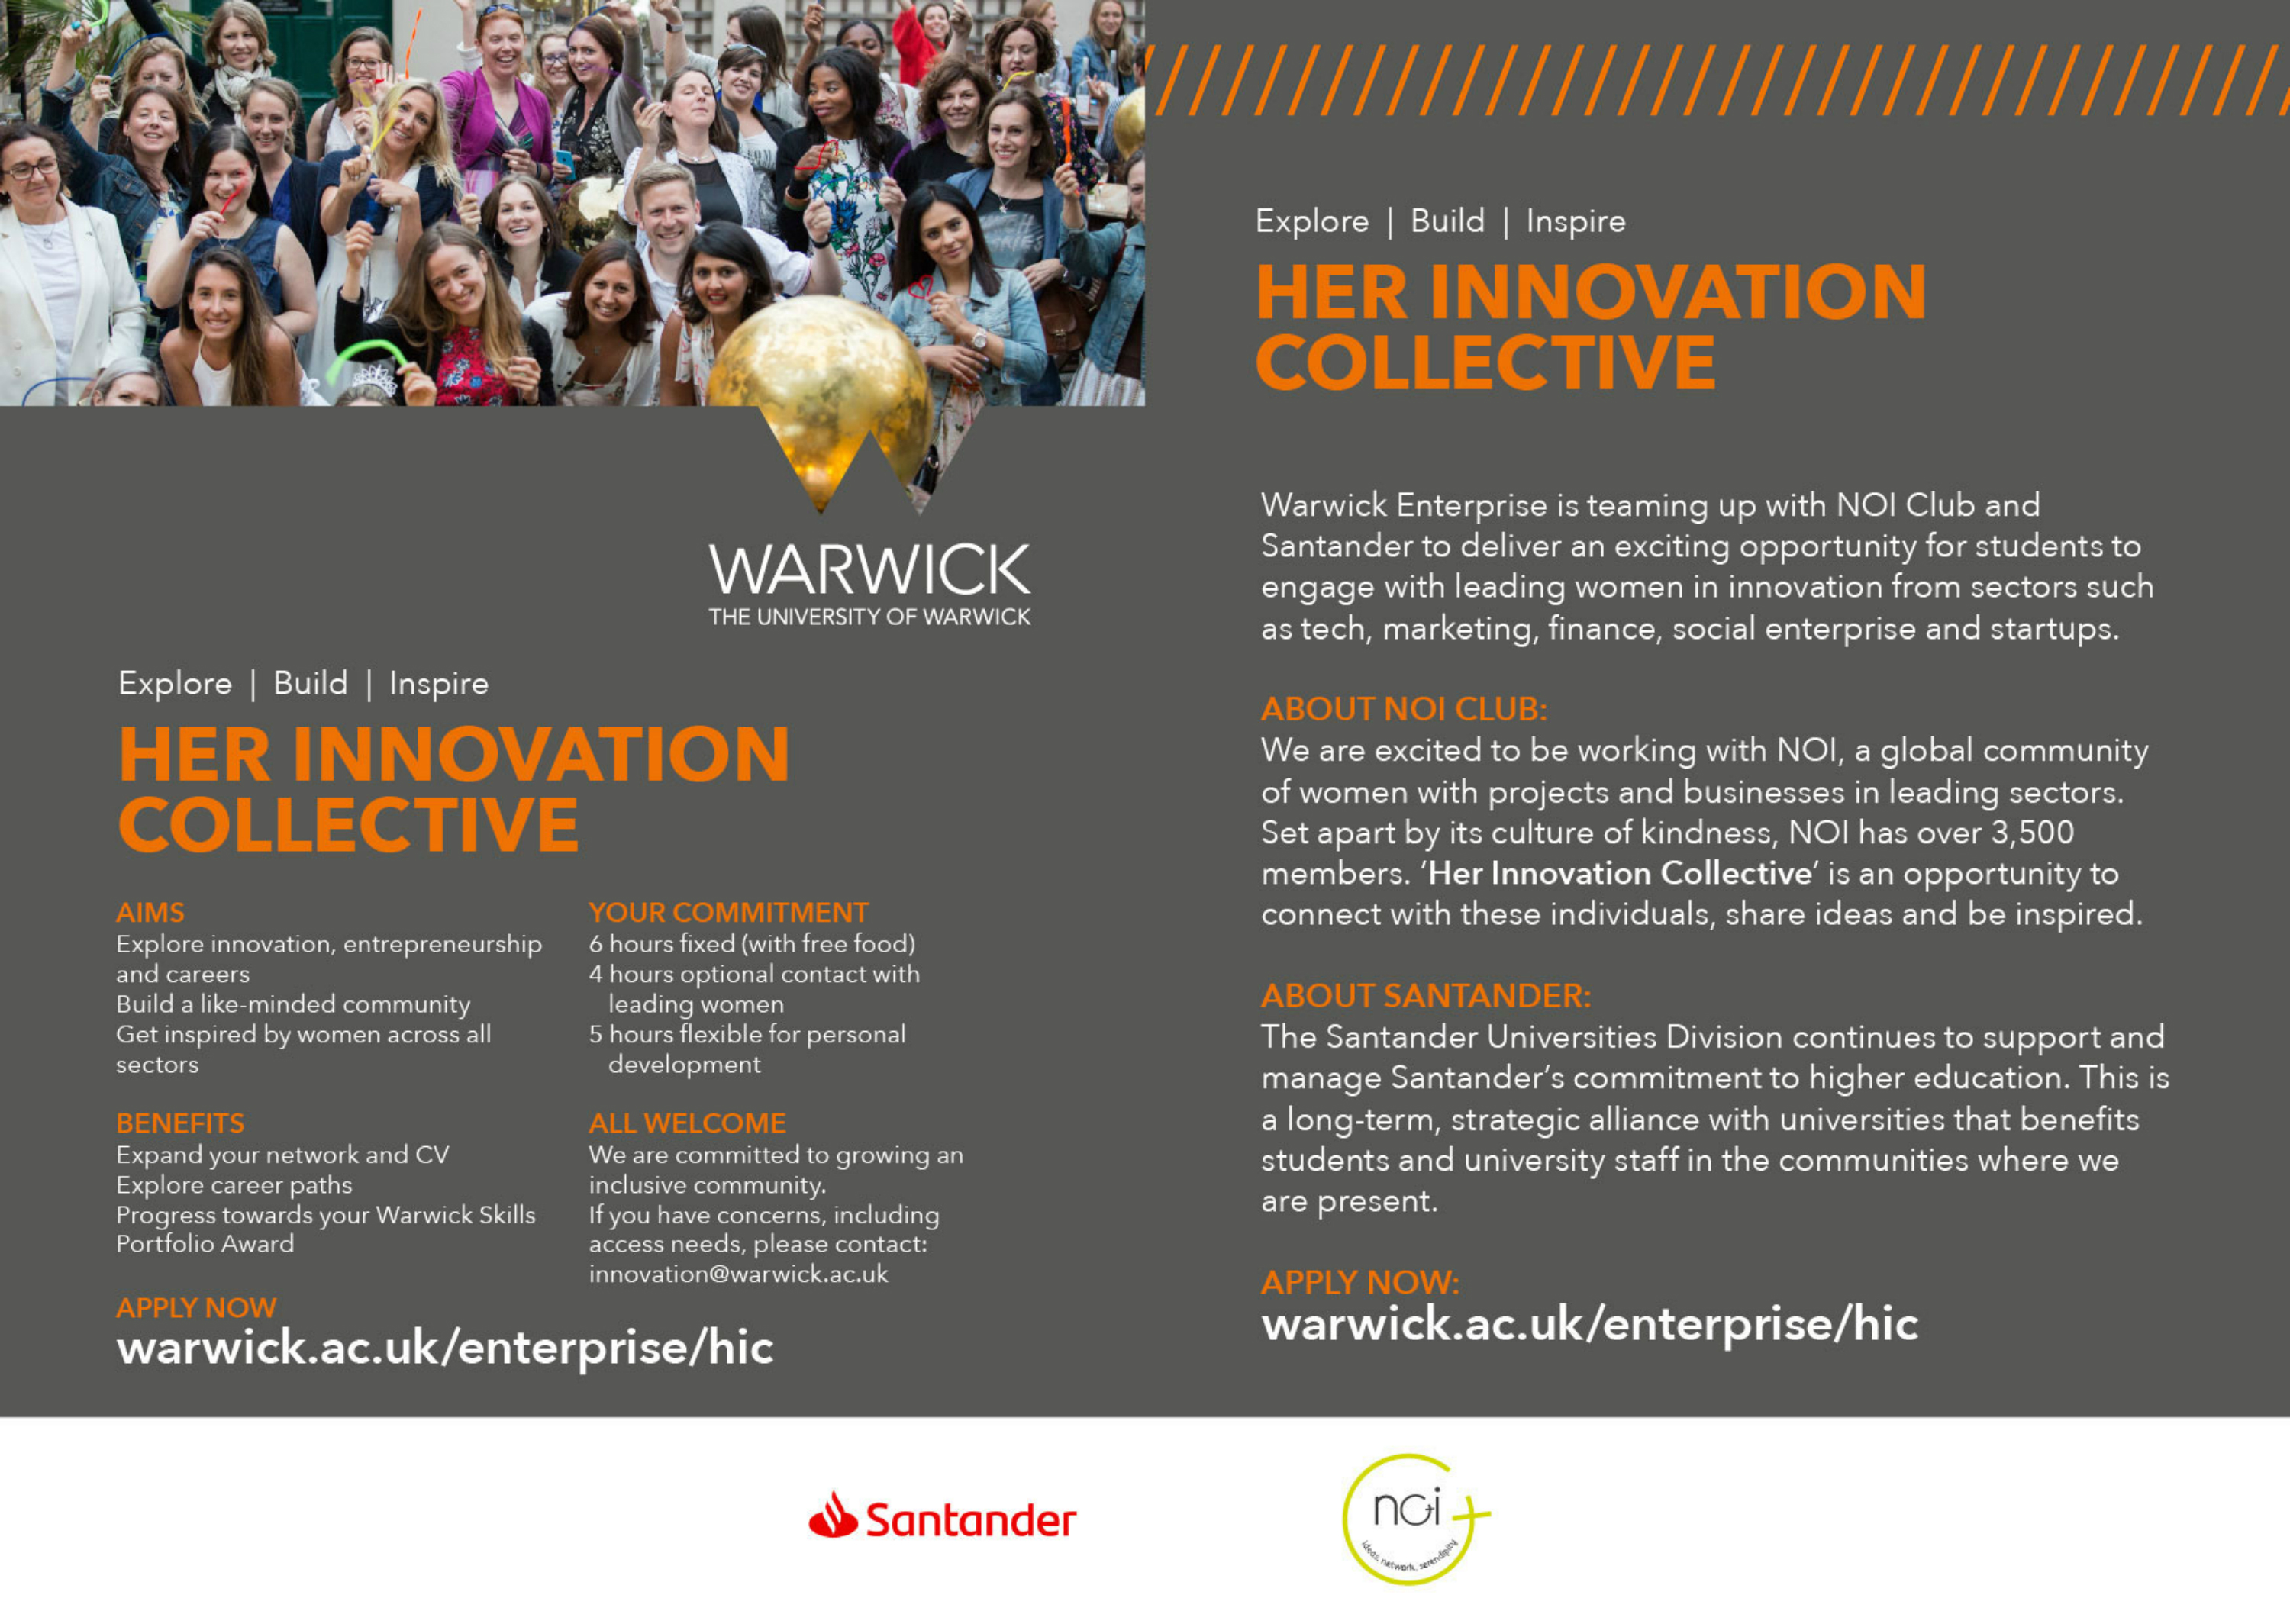 Her Innovation Collective with partner logos